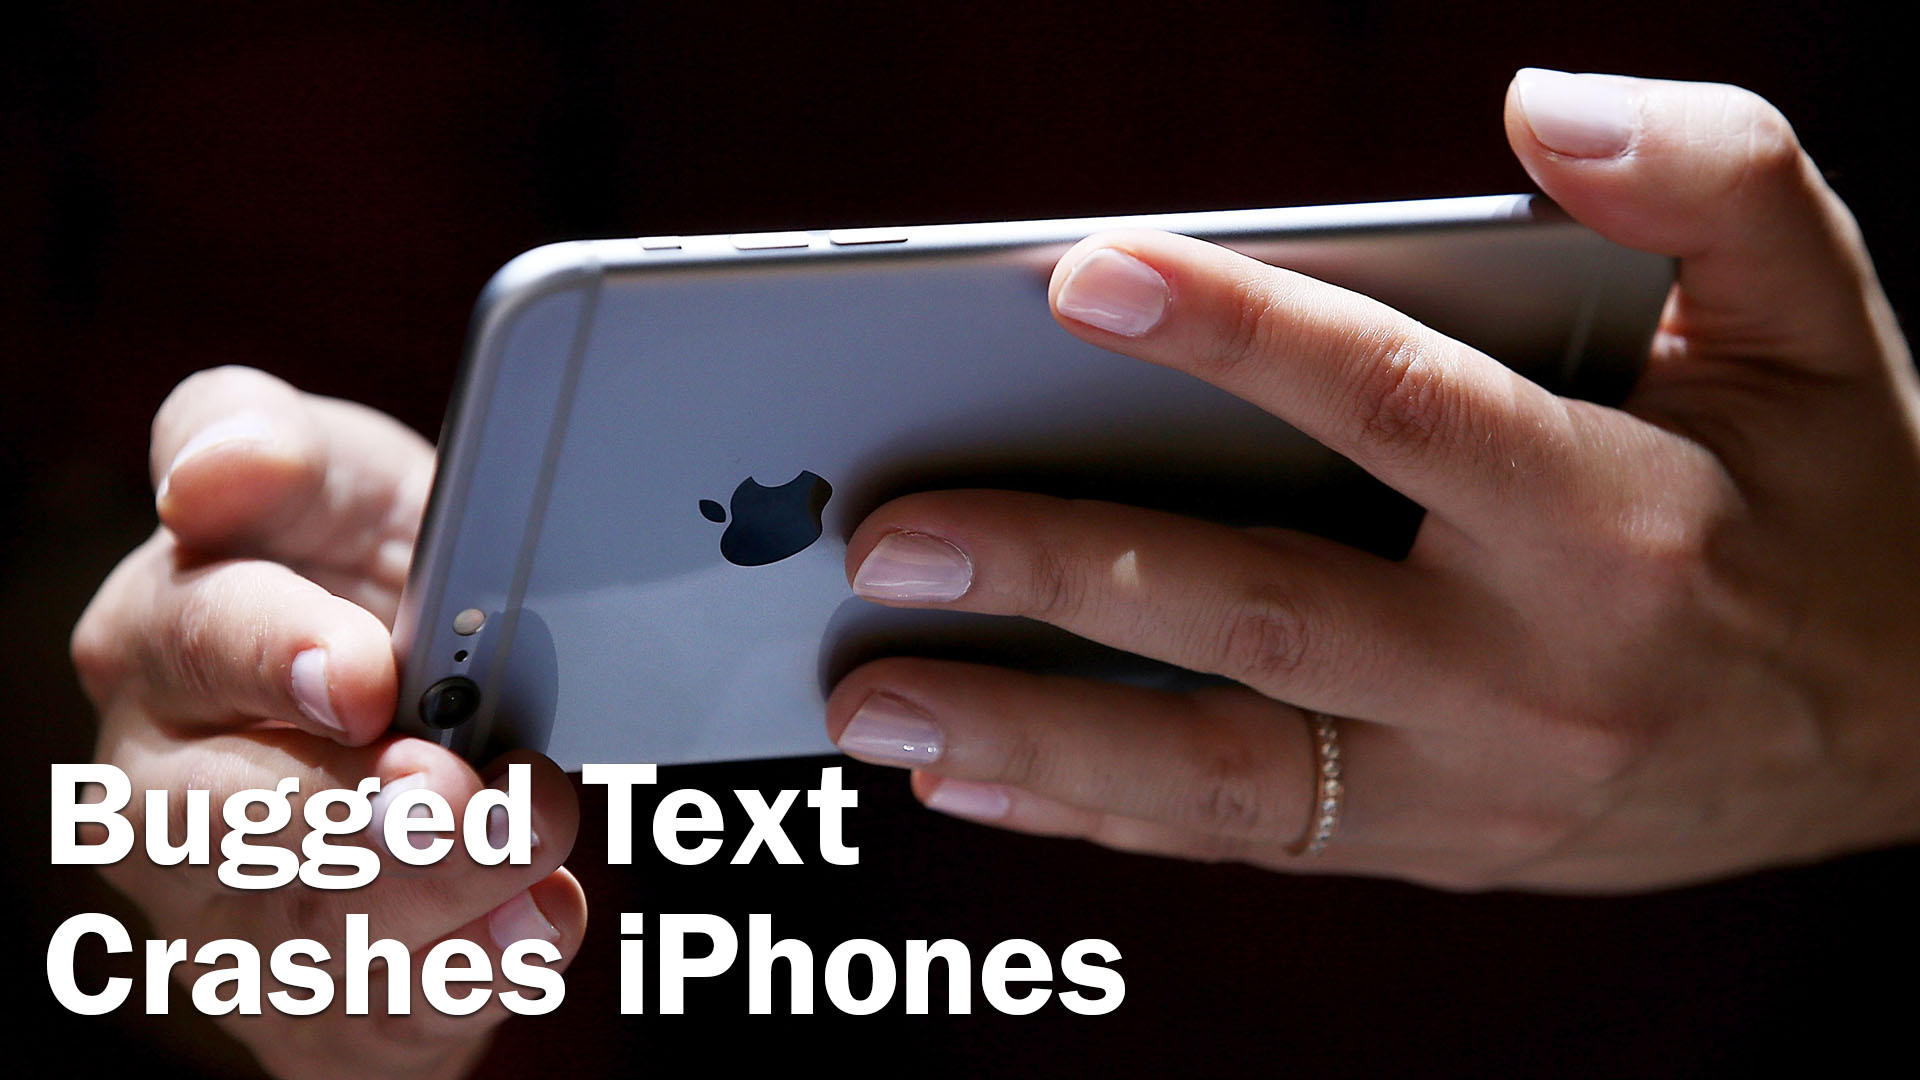 Bugged text messes with iPhones